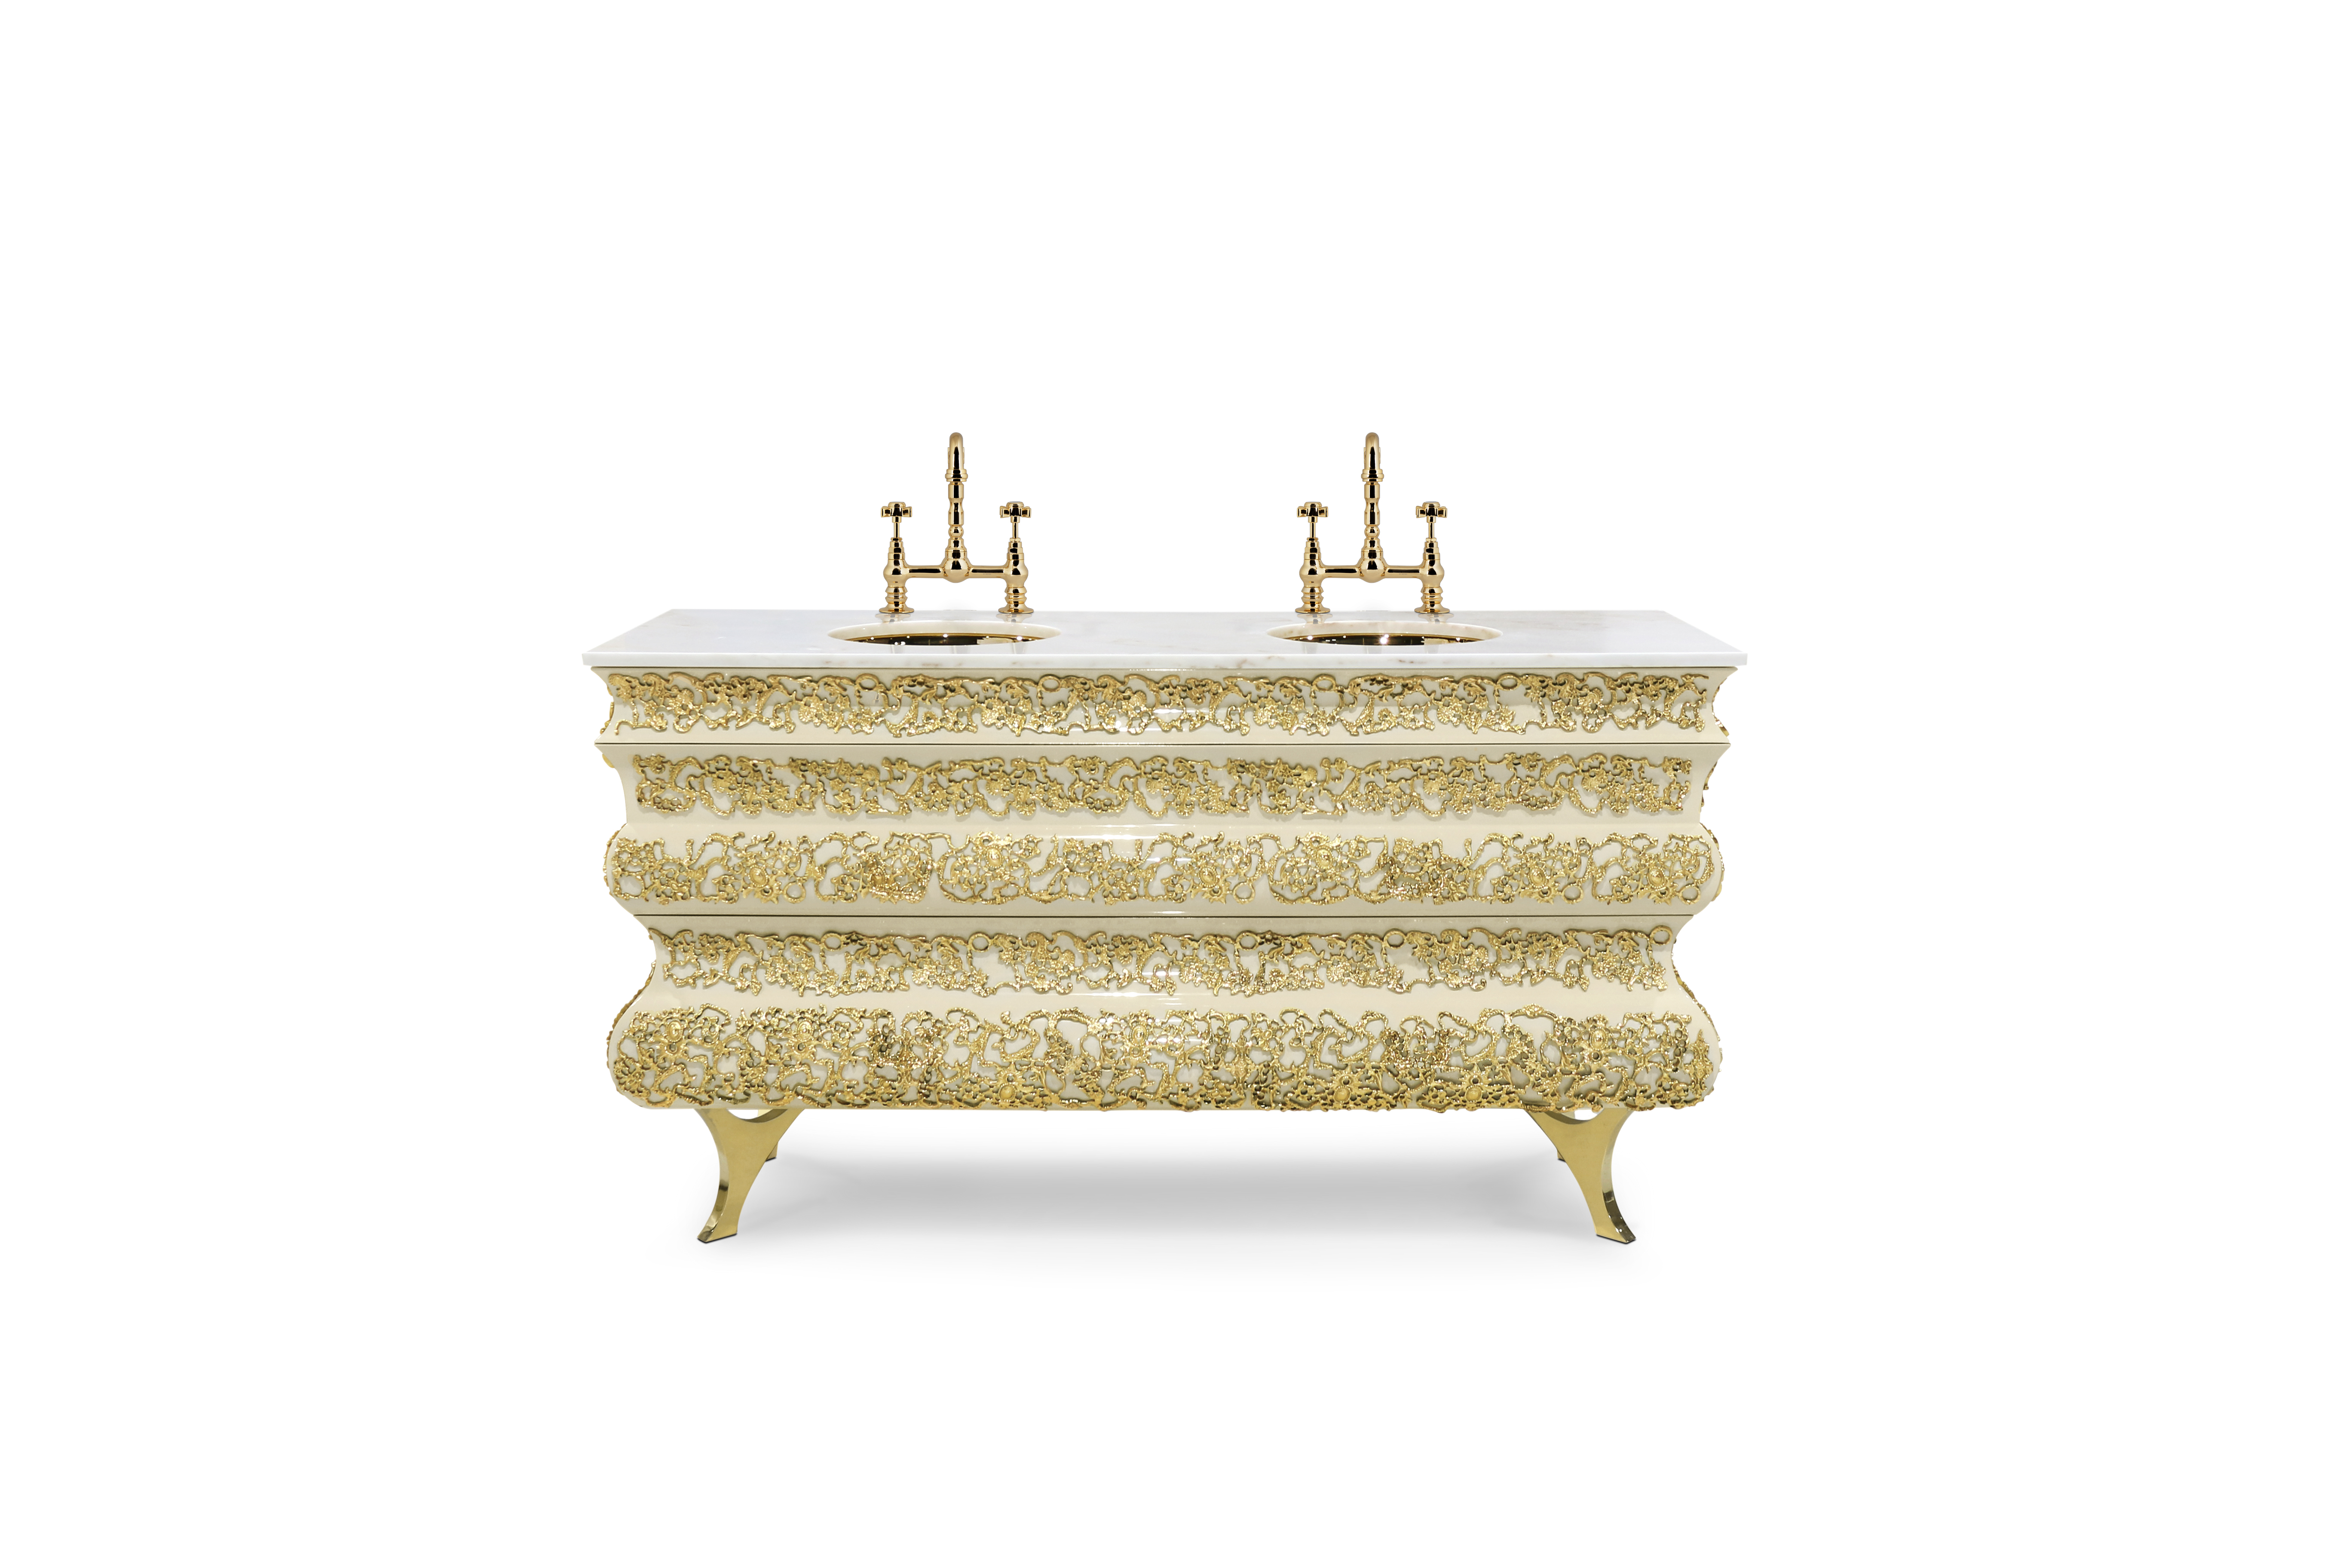 September Edition: Luxury Must-Haves Of The Month September Edition September Edition: Luxury Must-Haves Of The Month crochet washbasin 1 HR